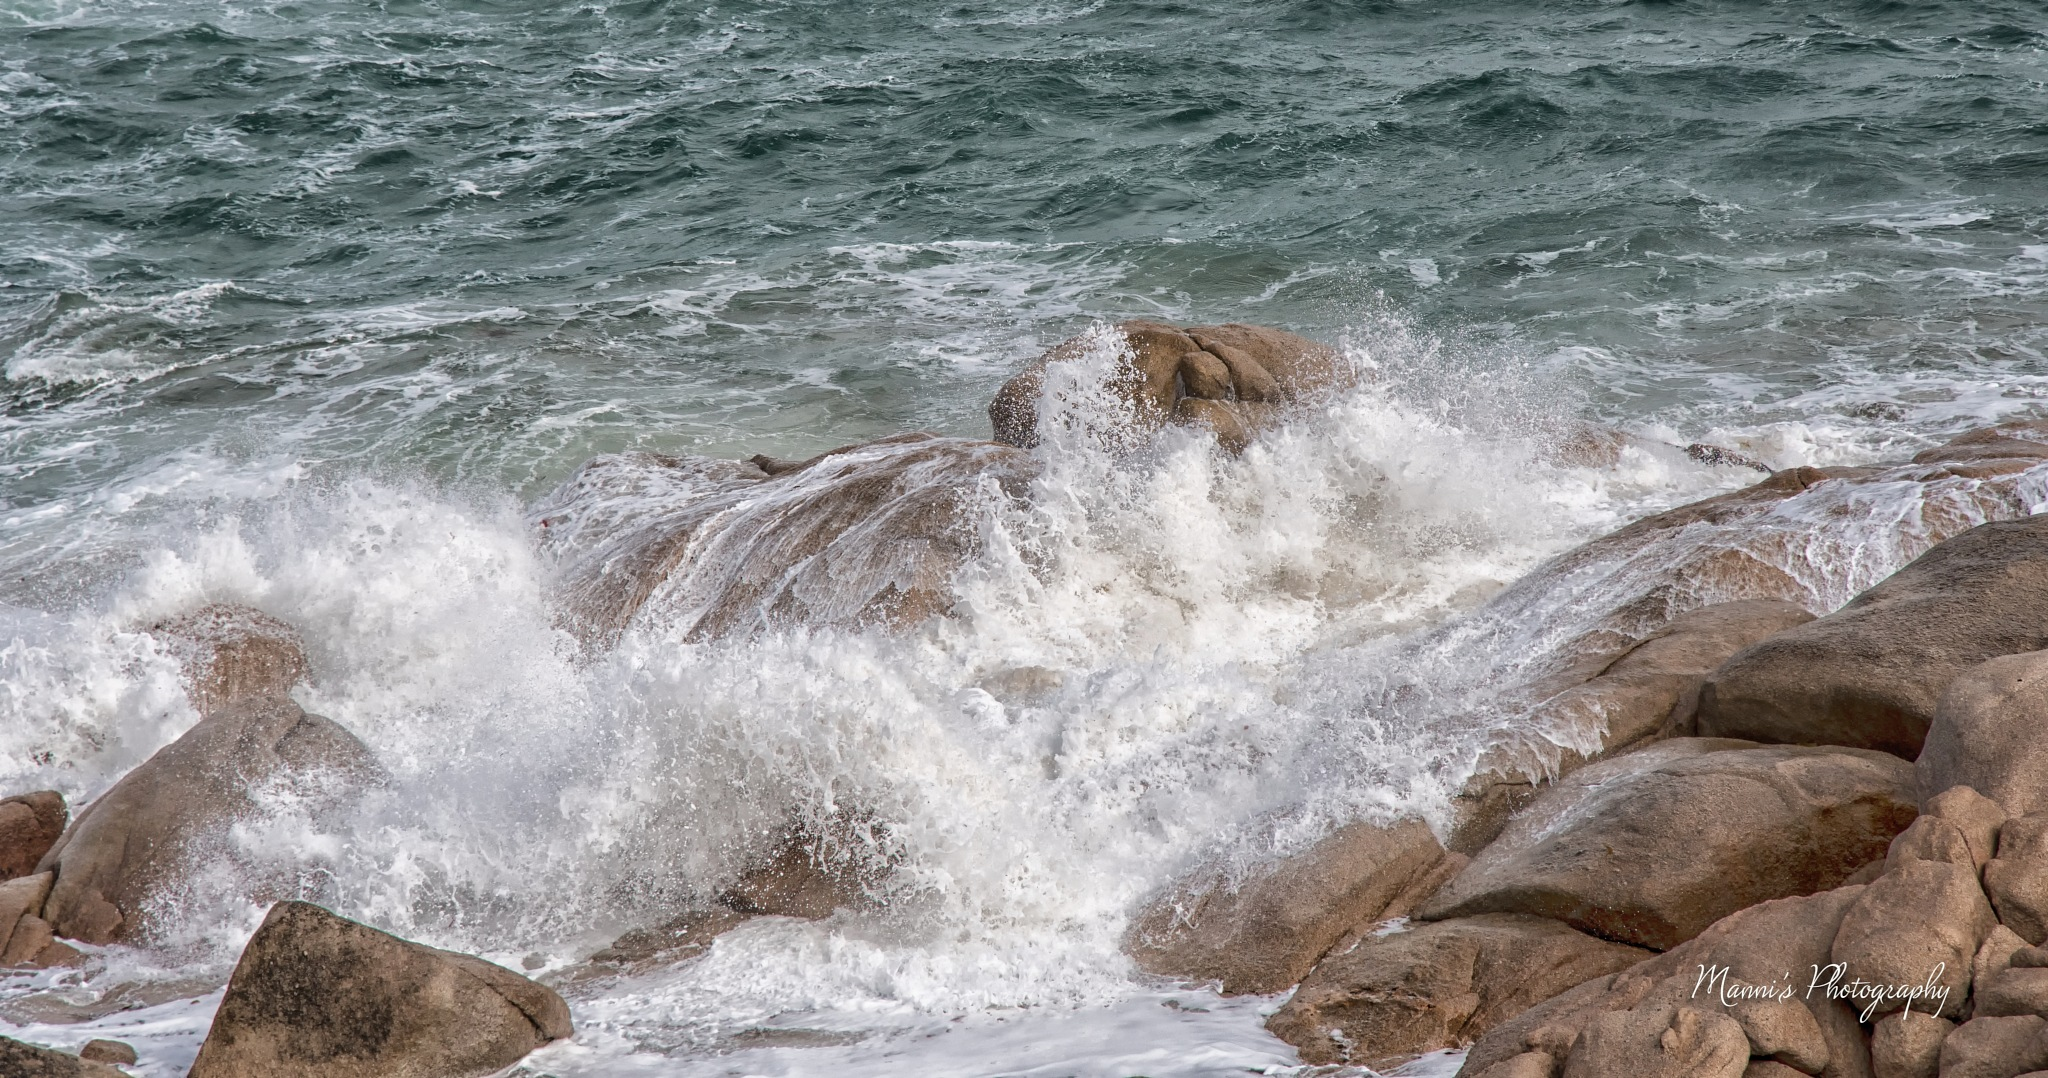 Over the Rocks by Manni